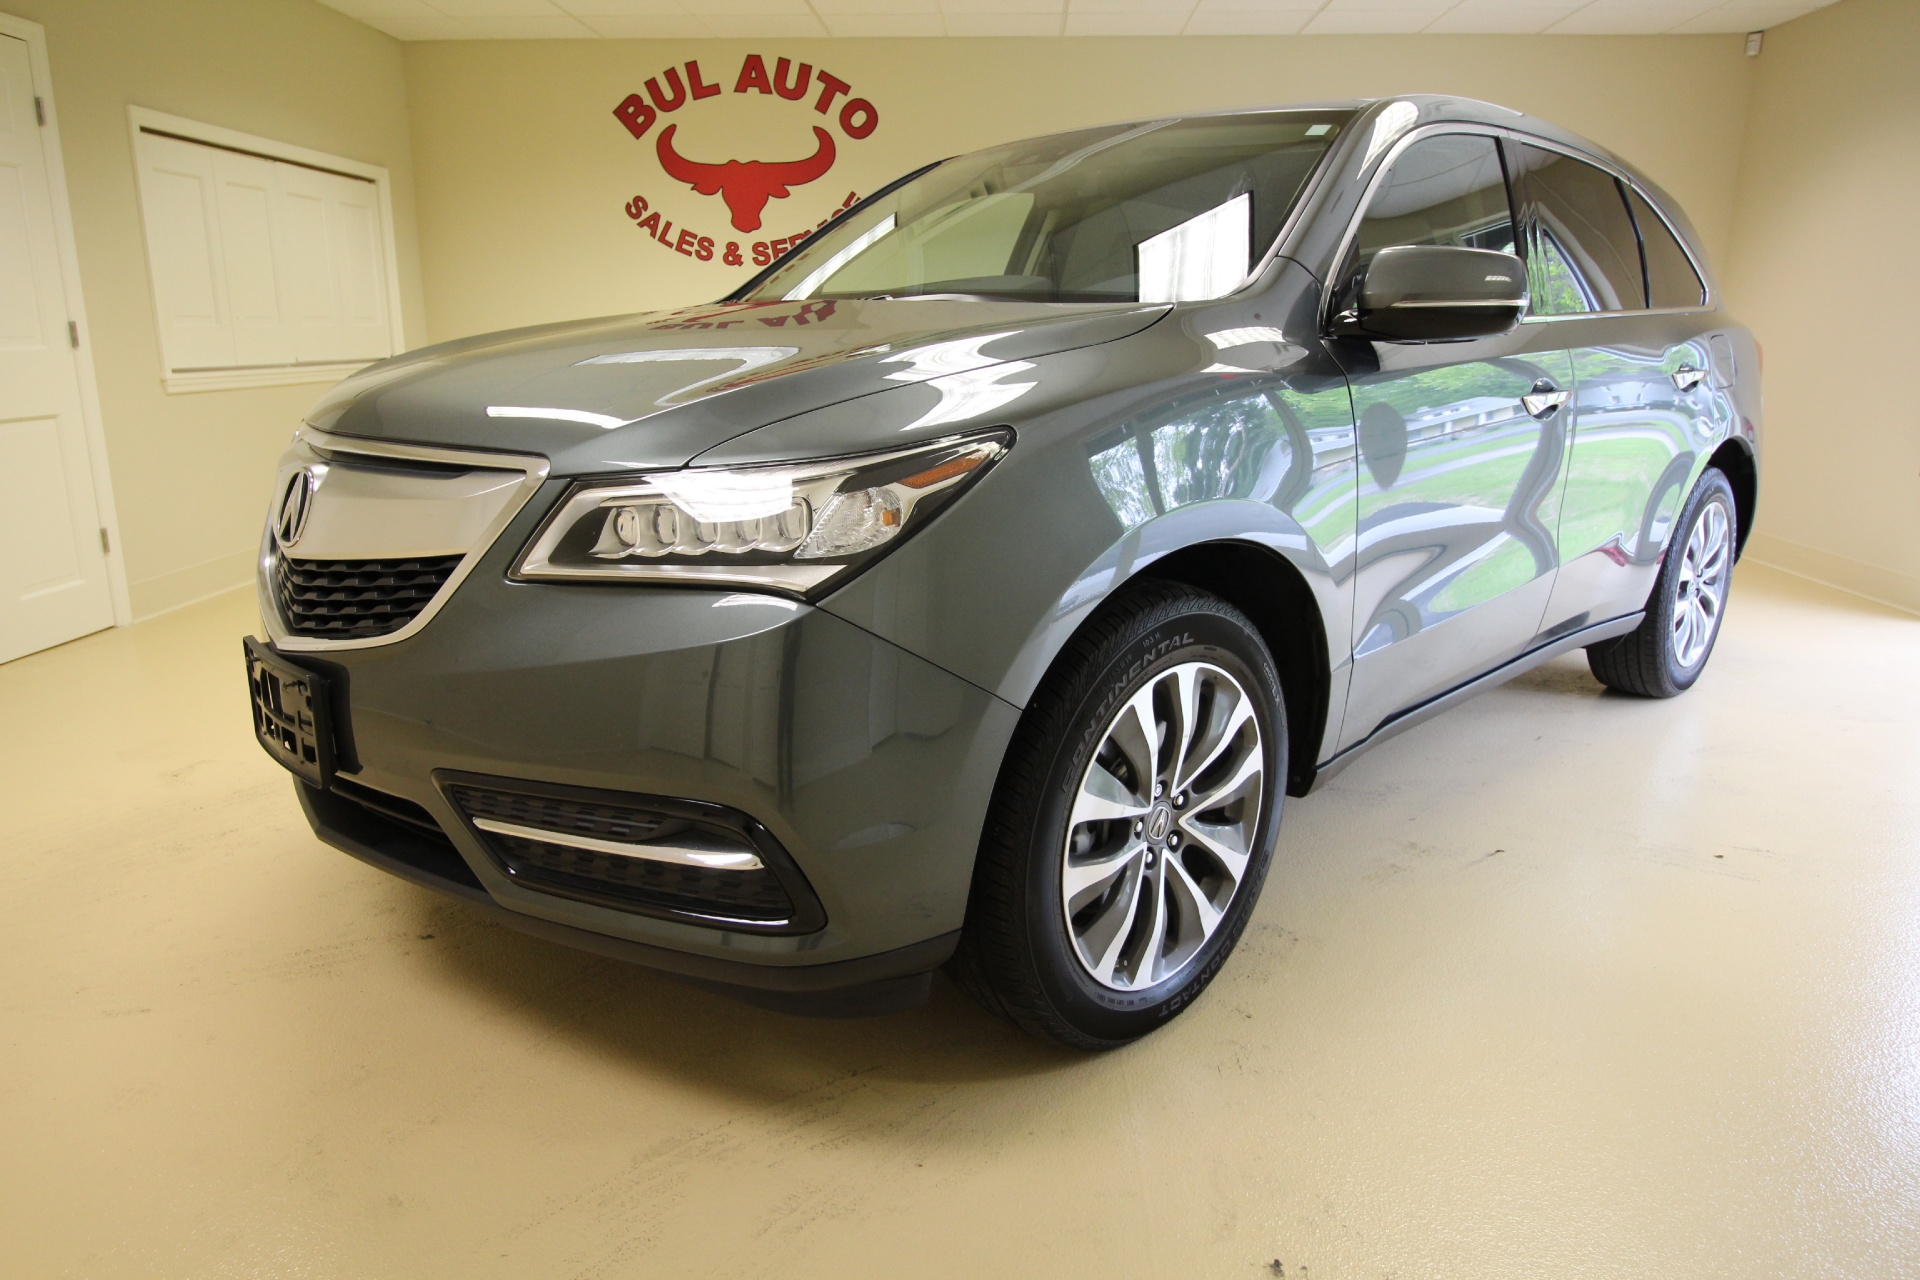 2014 acura mdx sh awd 6 spd at w tech package stock 16107 for sale near albany ny ny acura. Black Bedroom Furniture Sets. Home Design Ideas